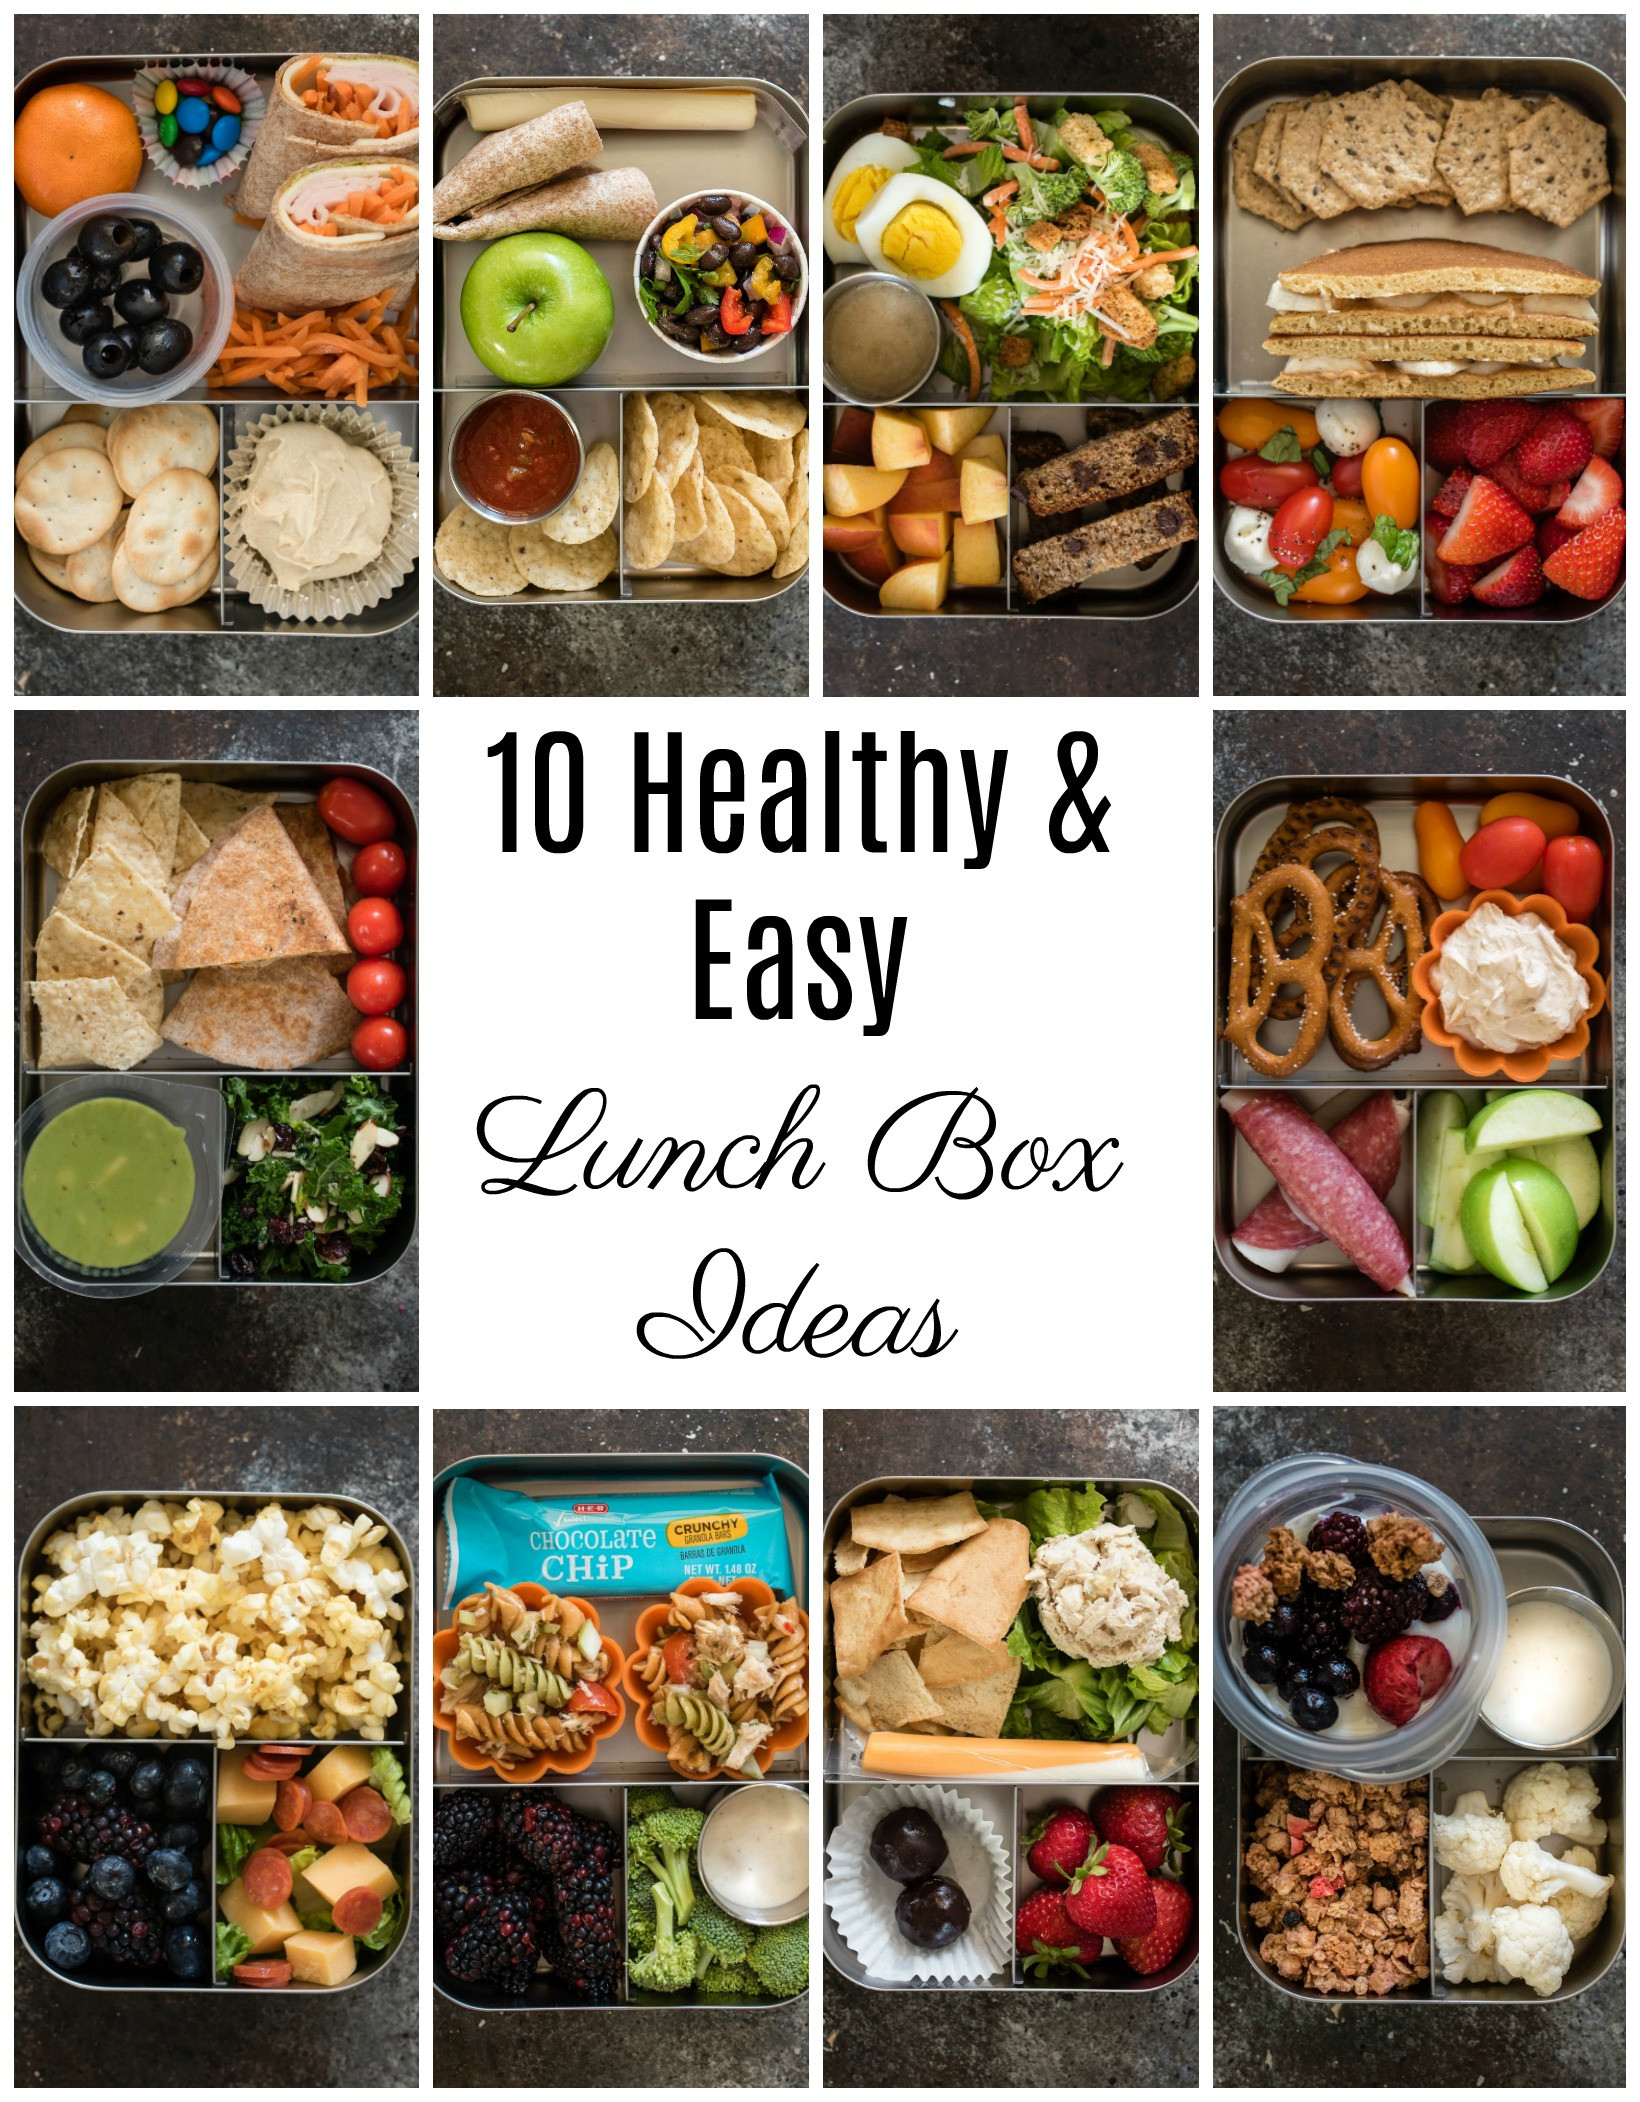 Healthy Kids Lunches  10 Healthy Lunch Box Ideas